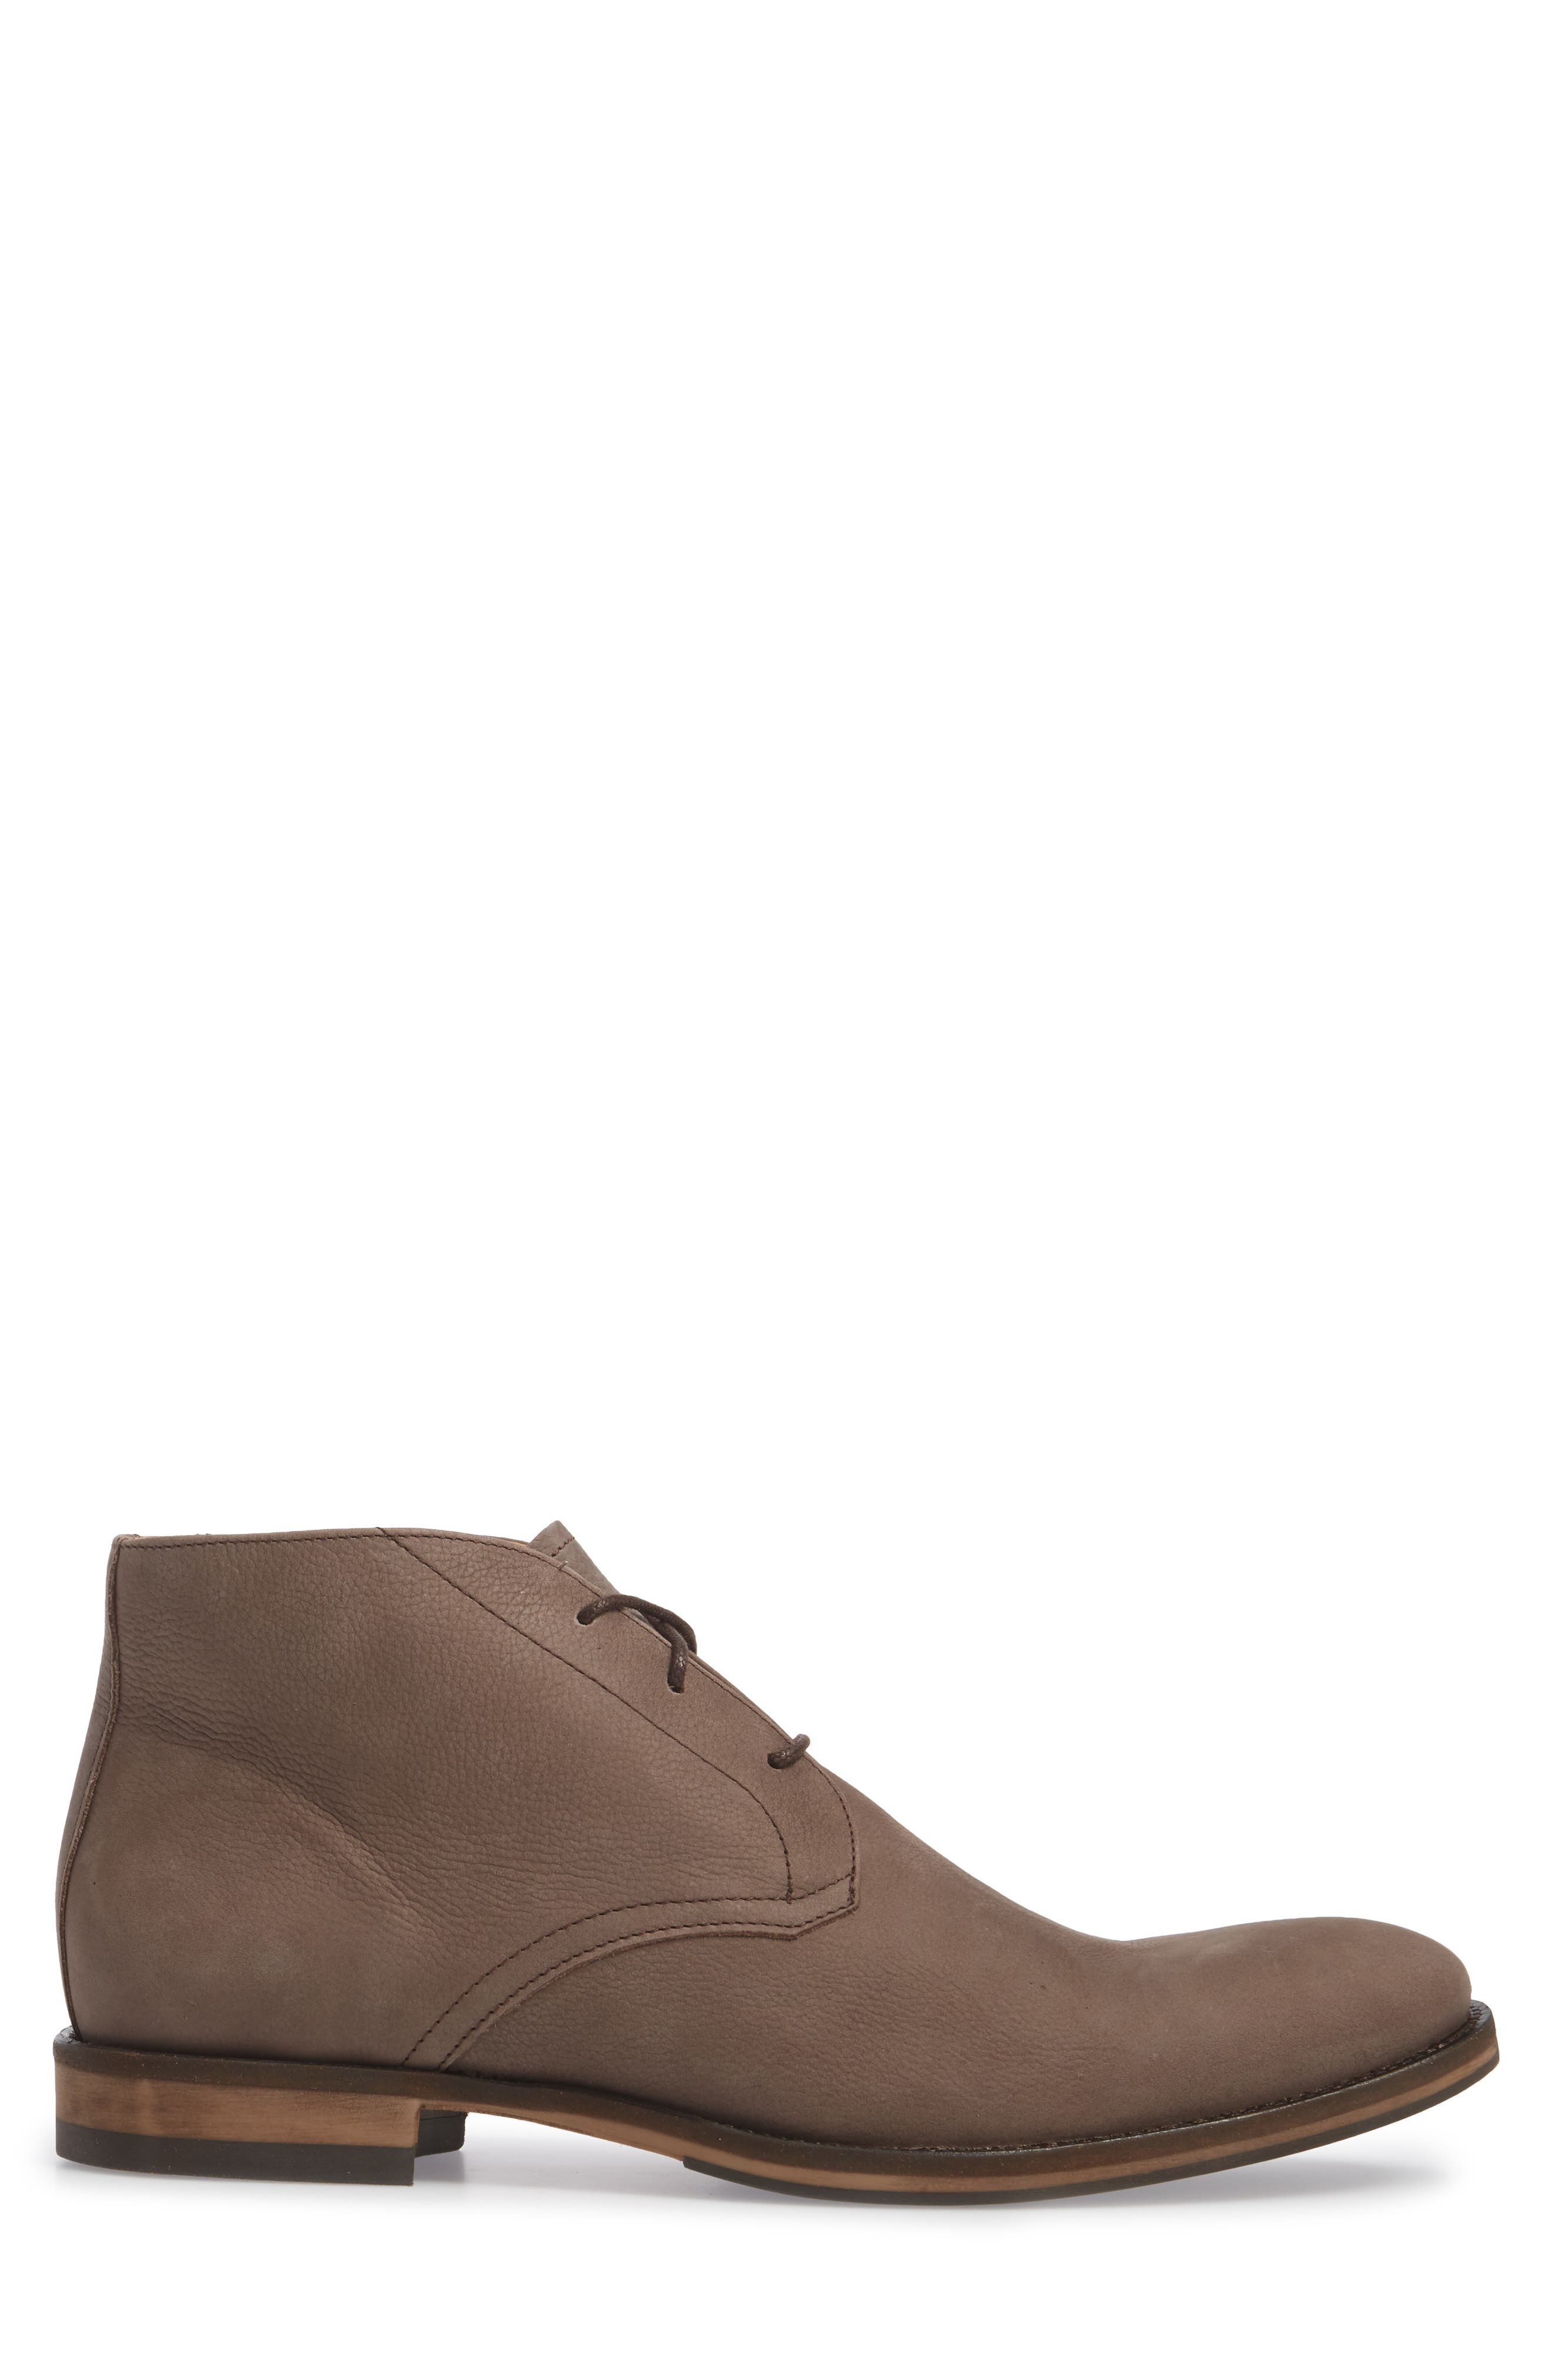 Barber Road Chukka Boot,                             Alternate thumbnail 3, color,                             Tobacco Leather